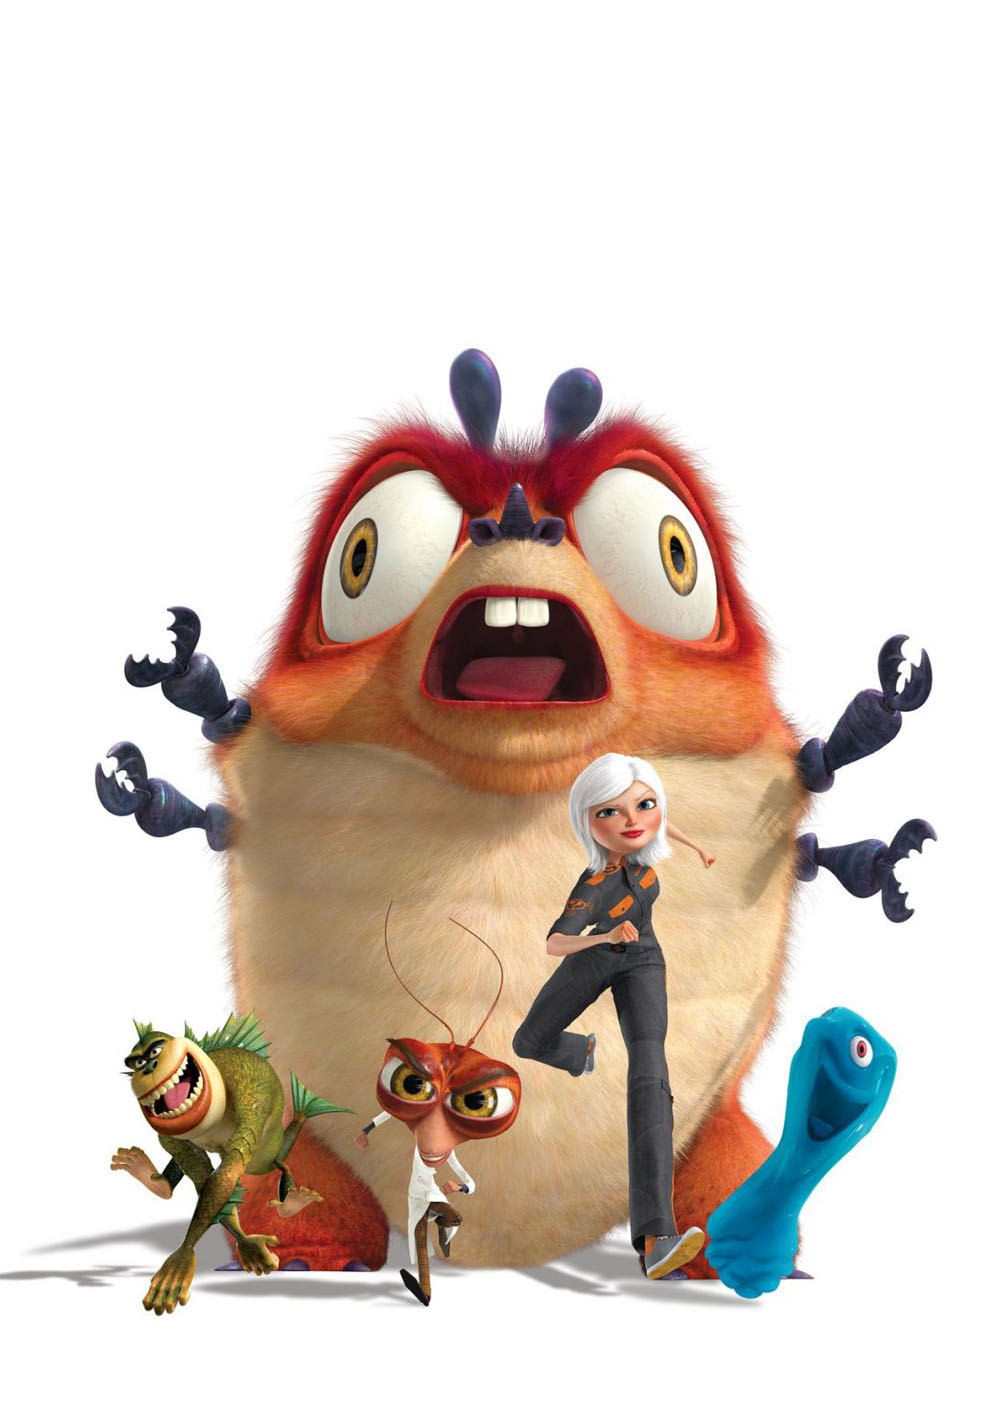 Monsters vs. Aliens.